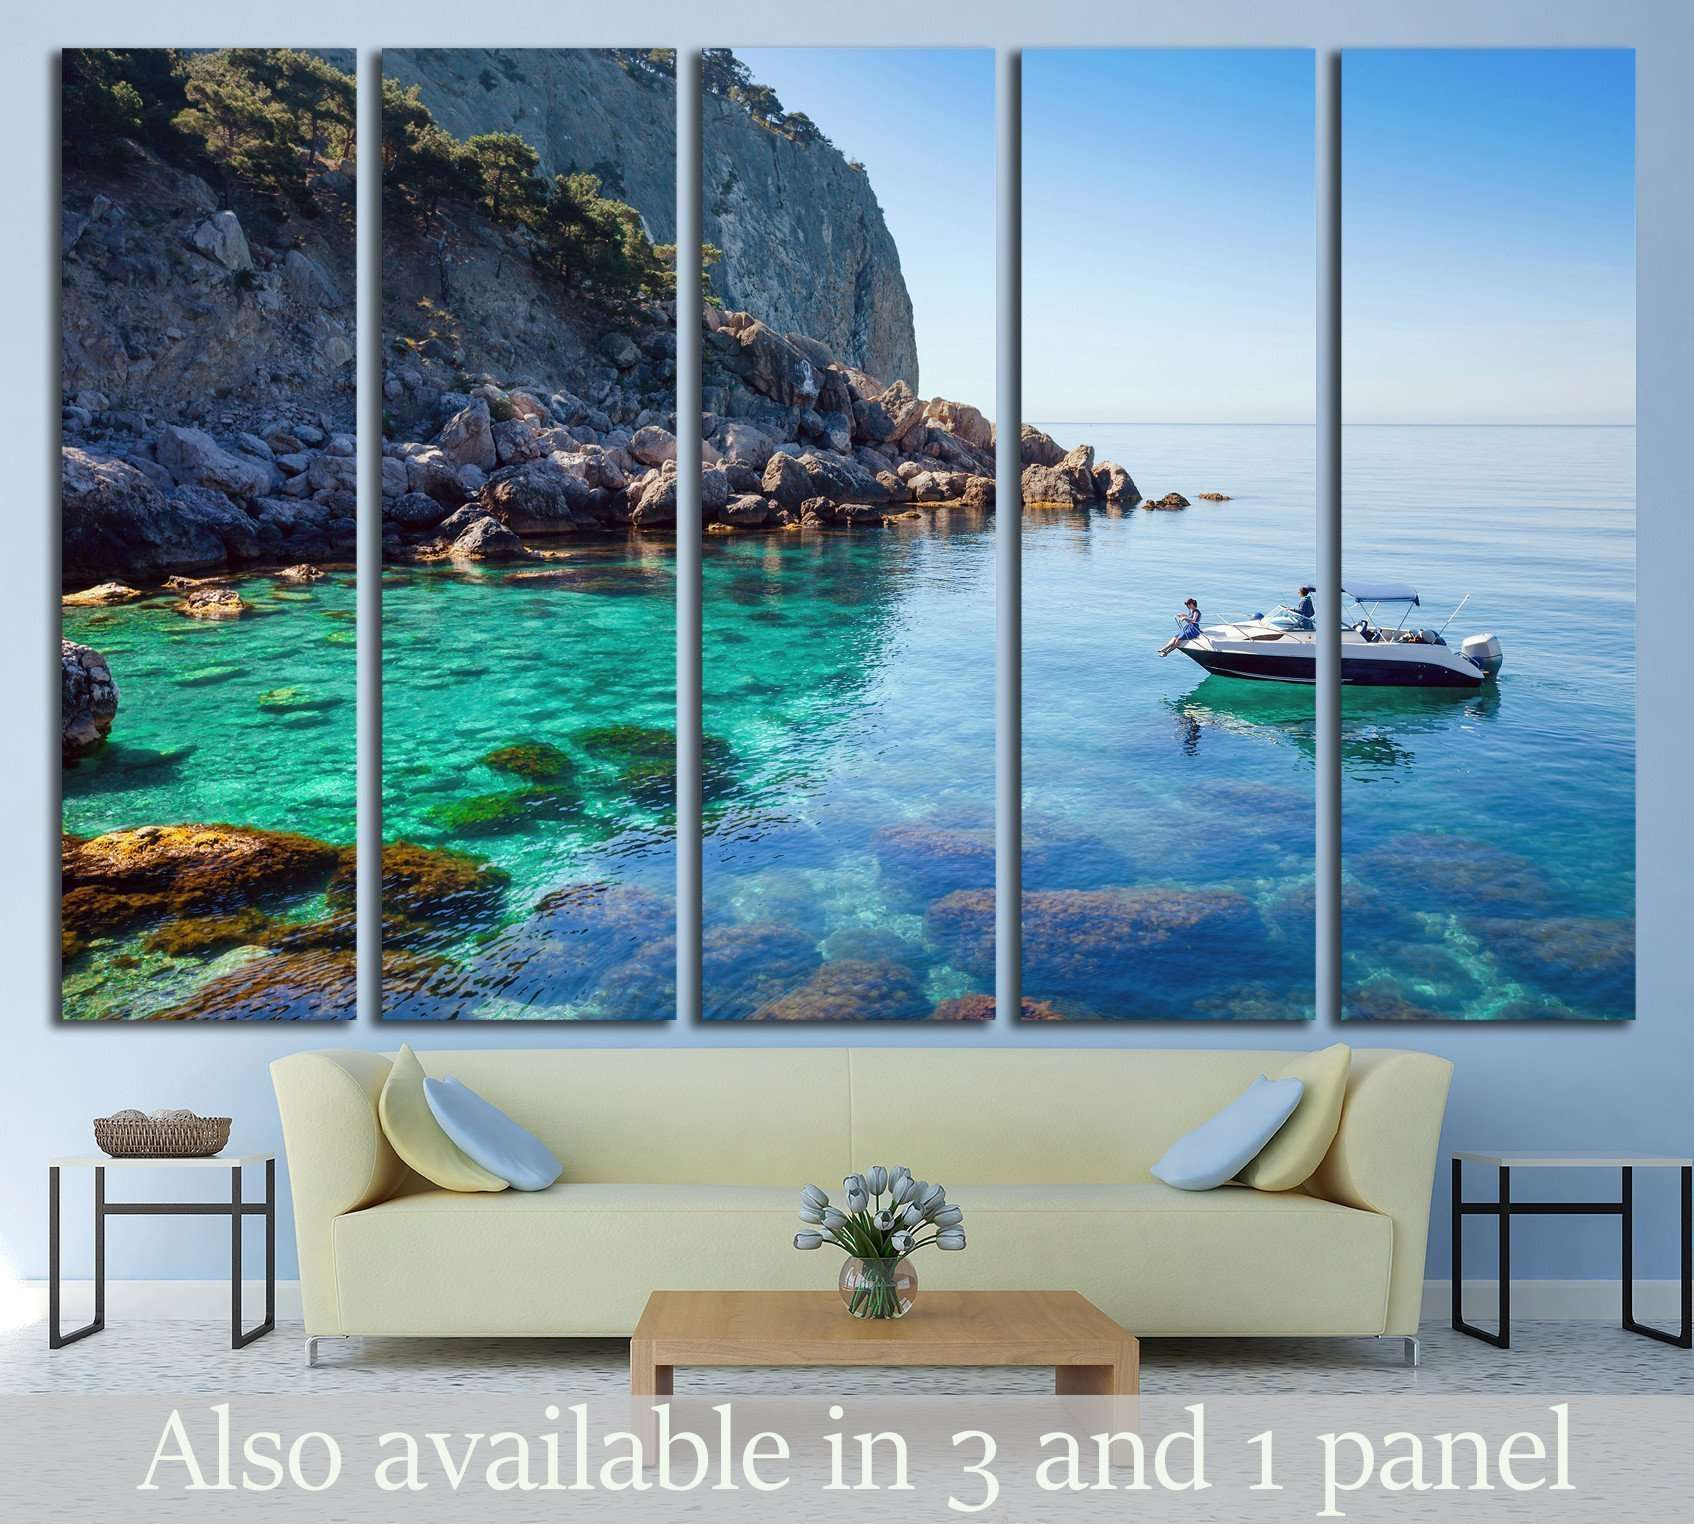 Recreation on the boat near the shore of a beautiful mountain №1409 Ready to Hang Canvas Print